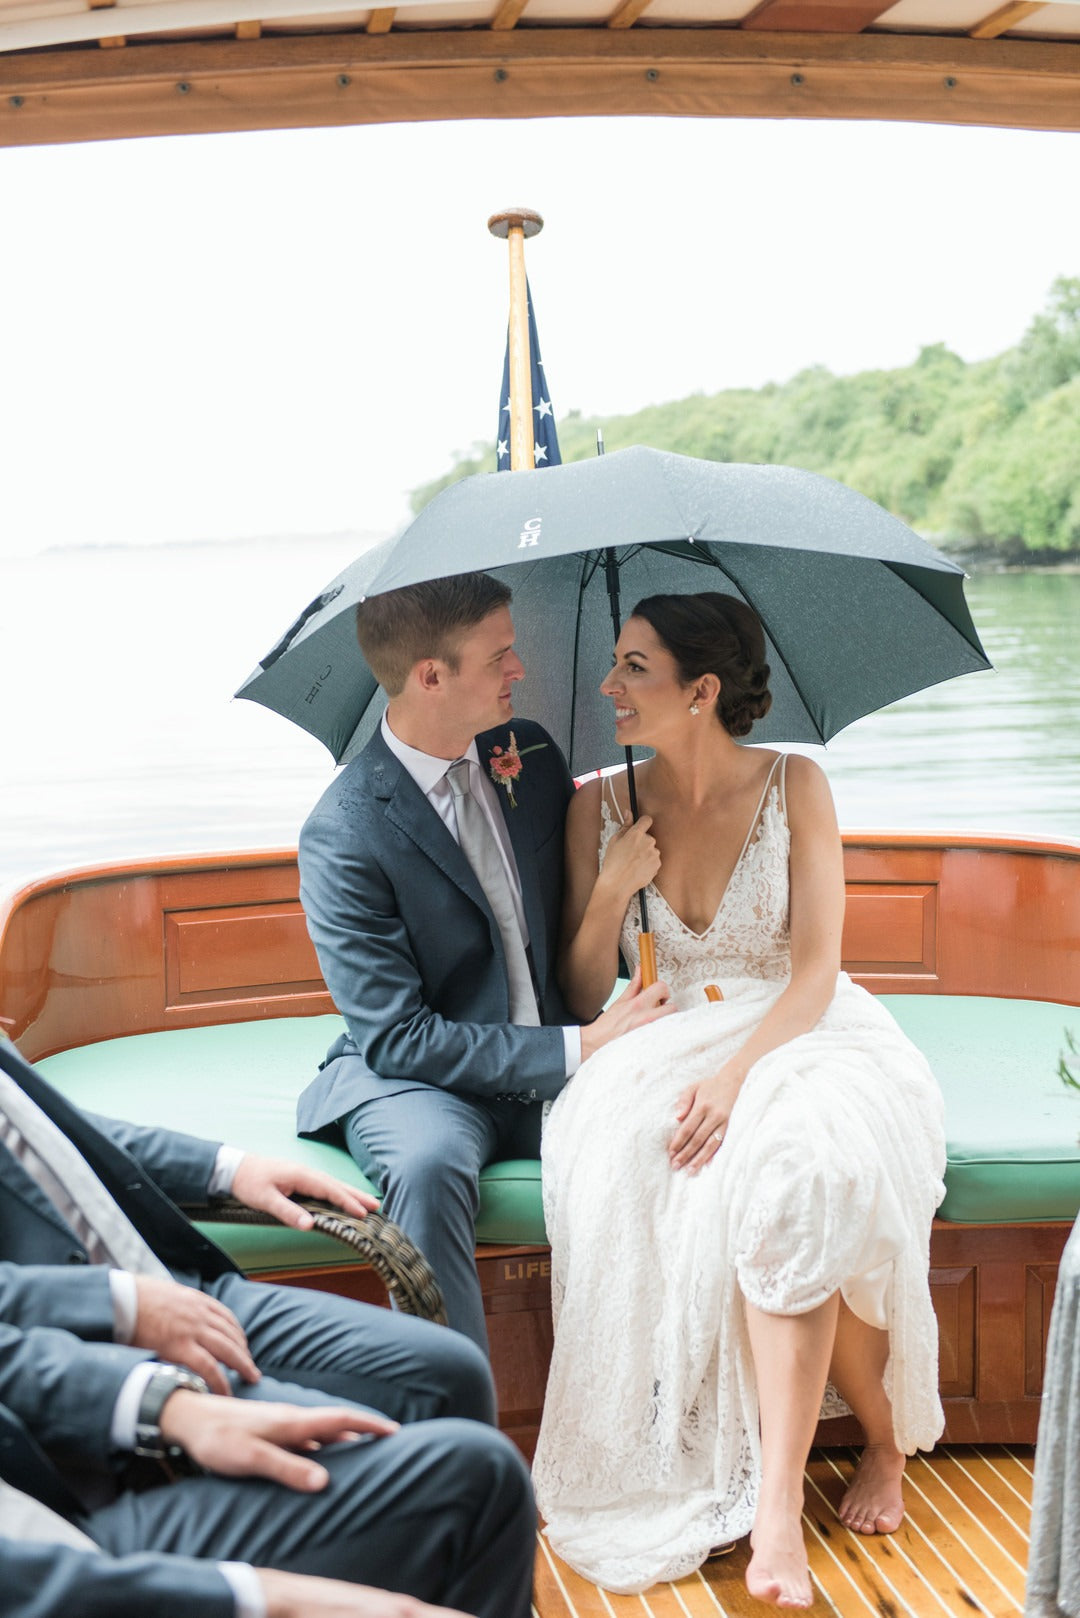 Bride and Groom | A Scenic Wedding Off the Coast of Rhode Island | Kate Aspen